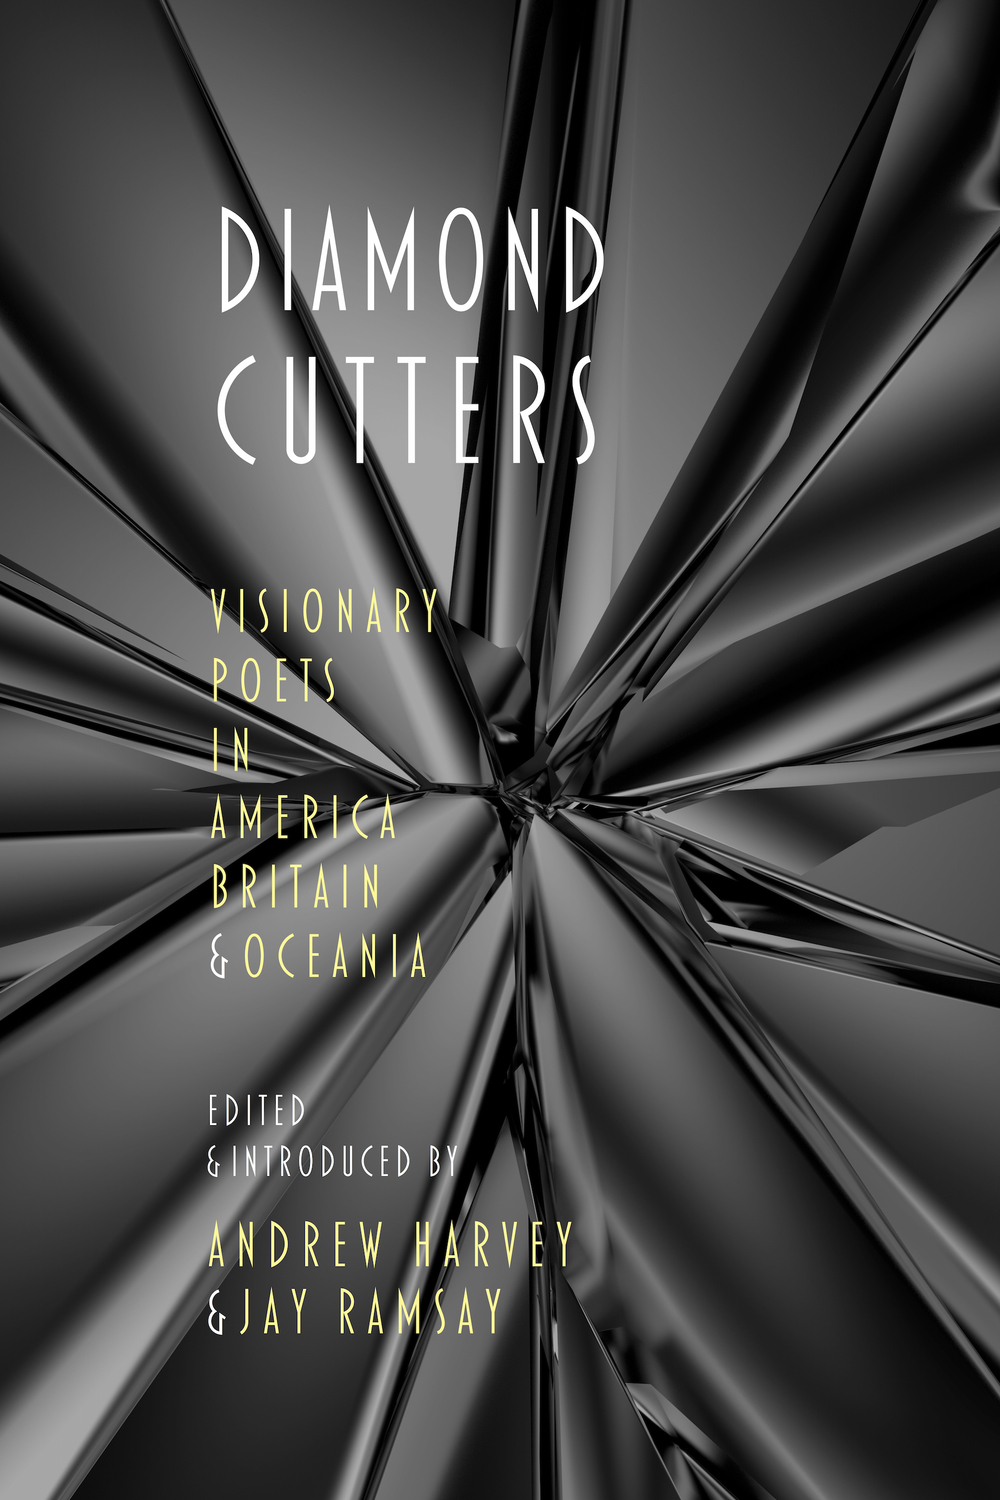 The Diamond Cutters - FrontCover - Final Art.jpg